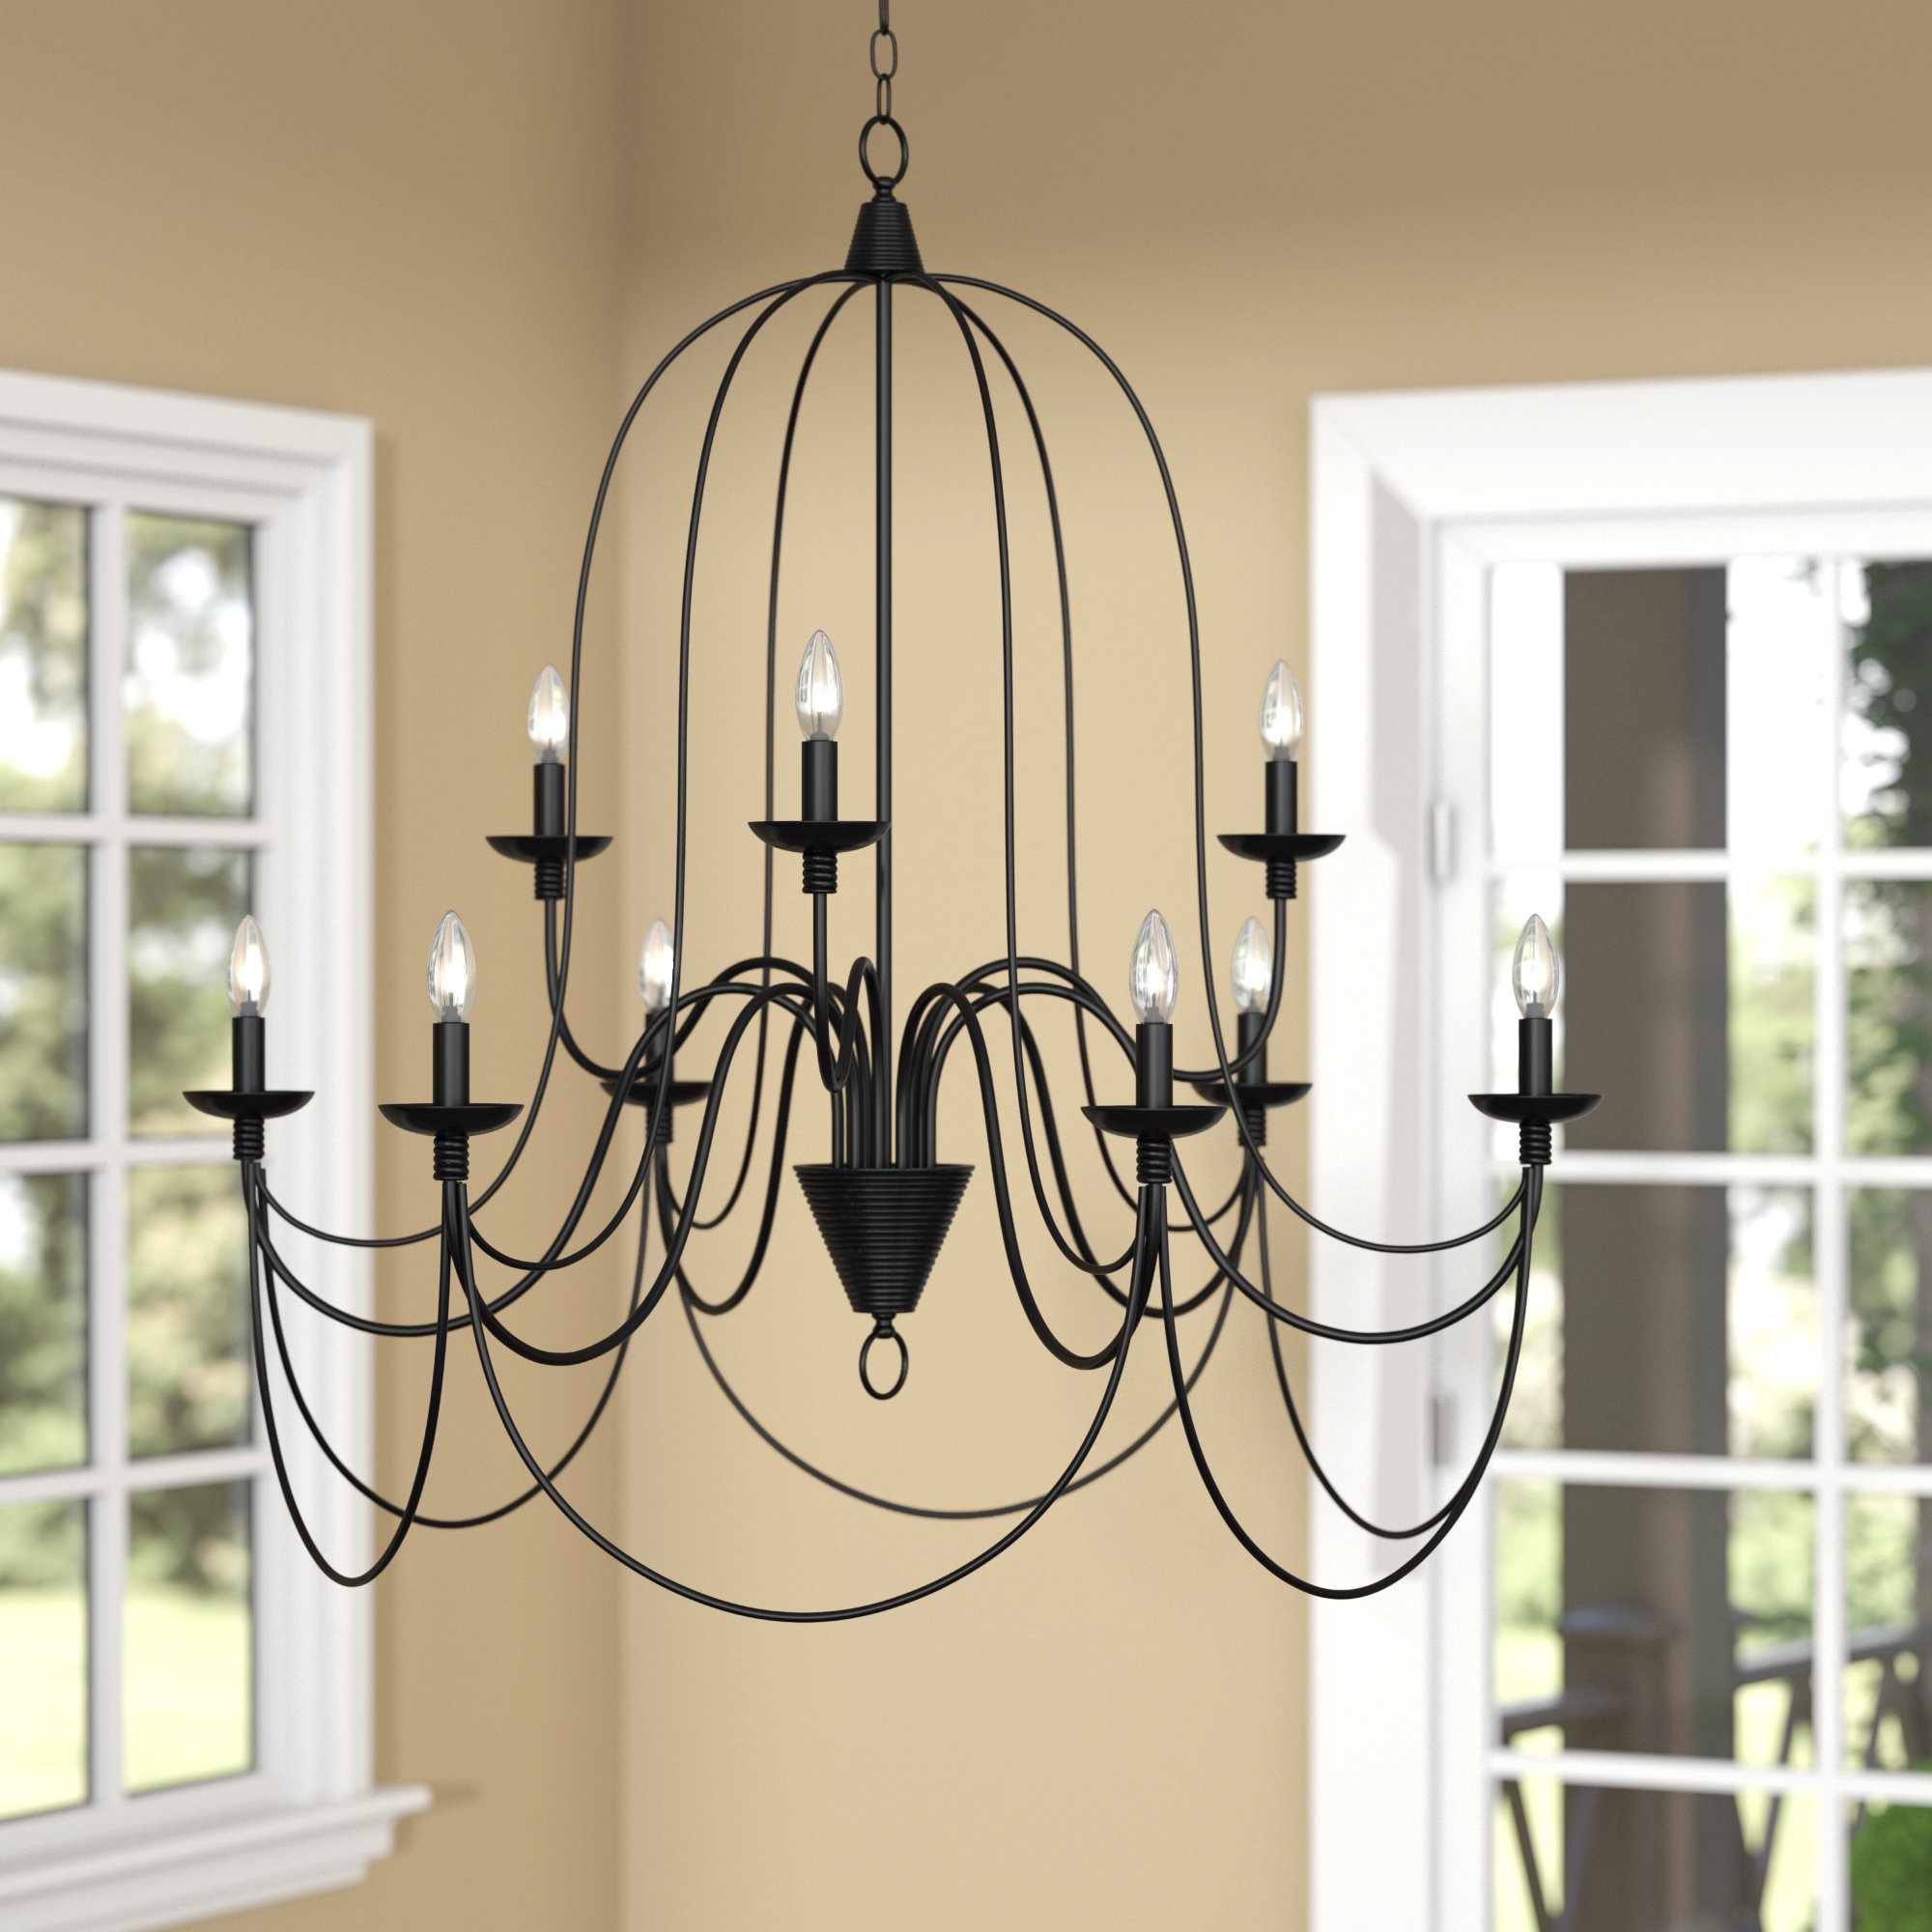 Popular Three Posts Watford 9 Light Candle Style Chandelier Intended For Camilla 9 Light Candle Style Chandeliers (View 19 of 20)